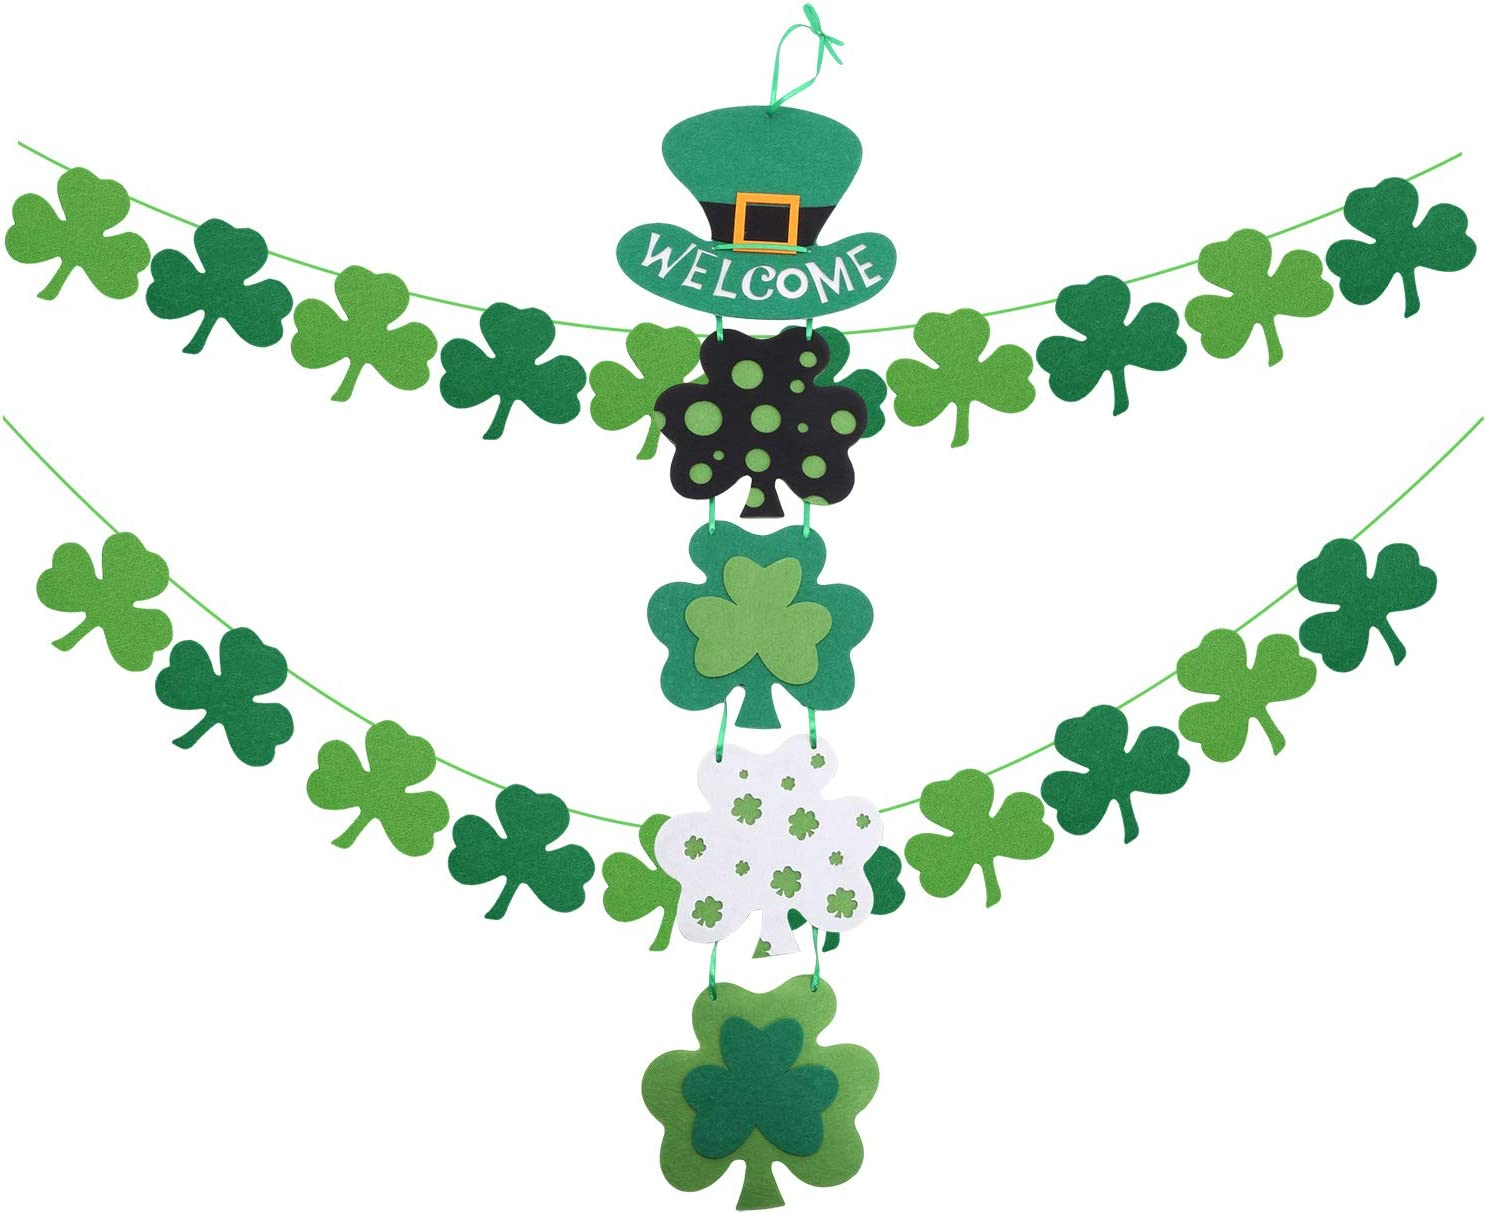 6 metre long St Patricks Cross Ireland 20 flag bunting